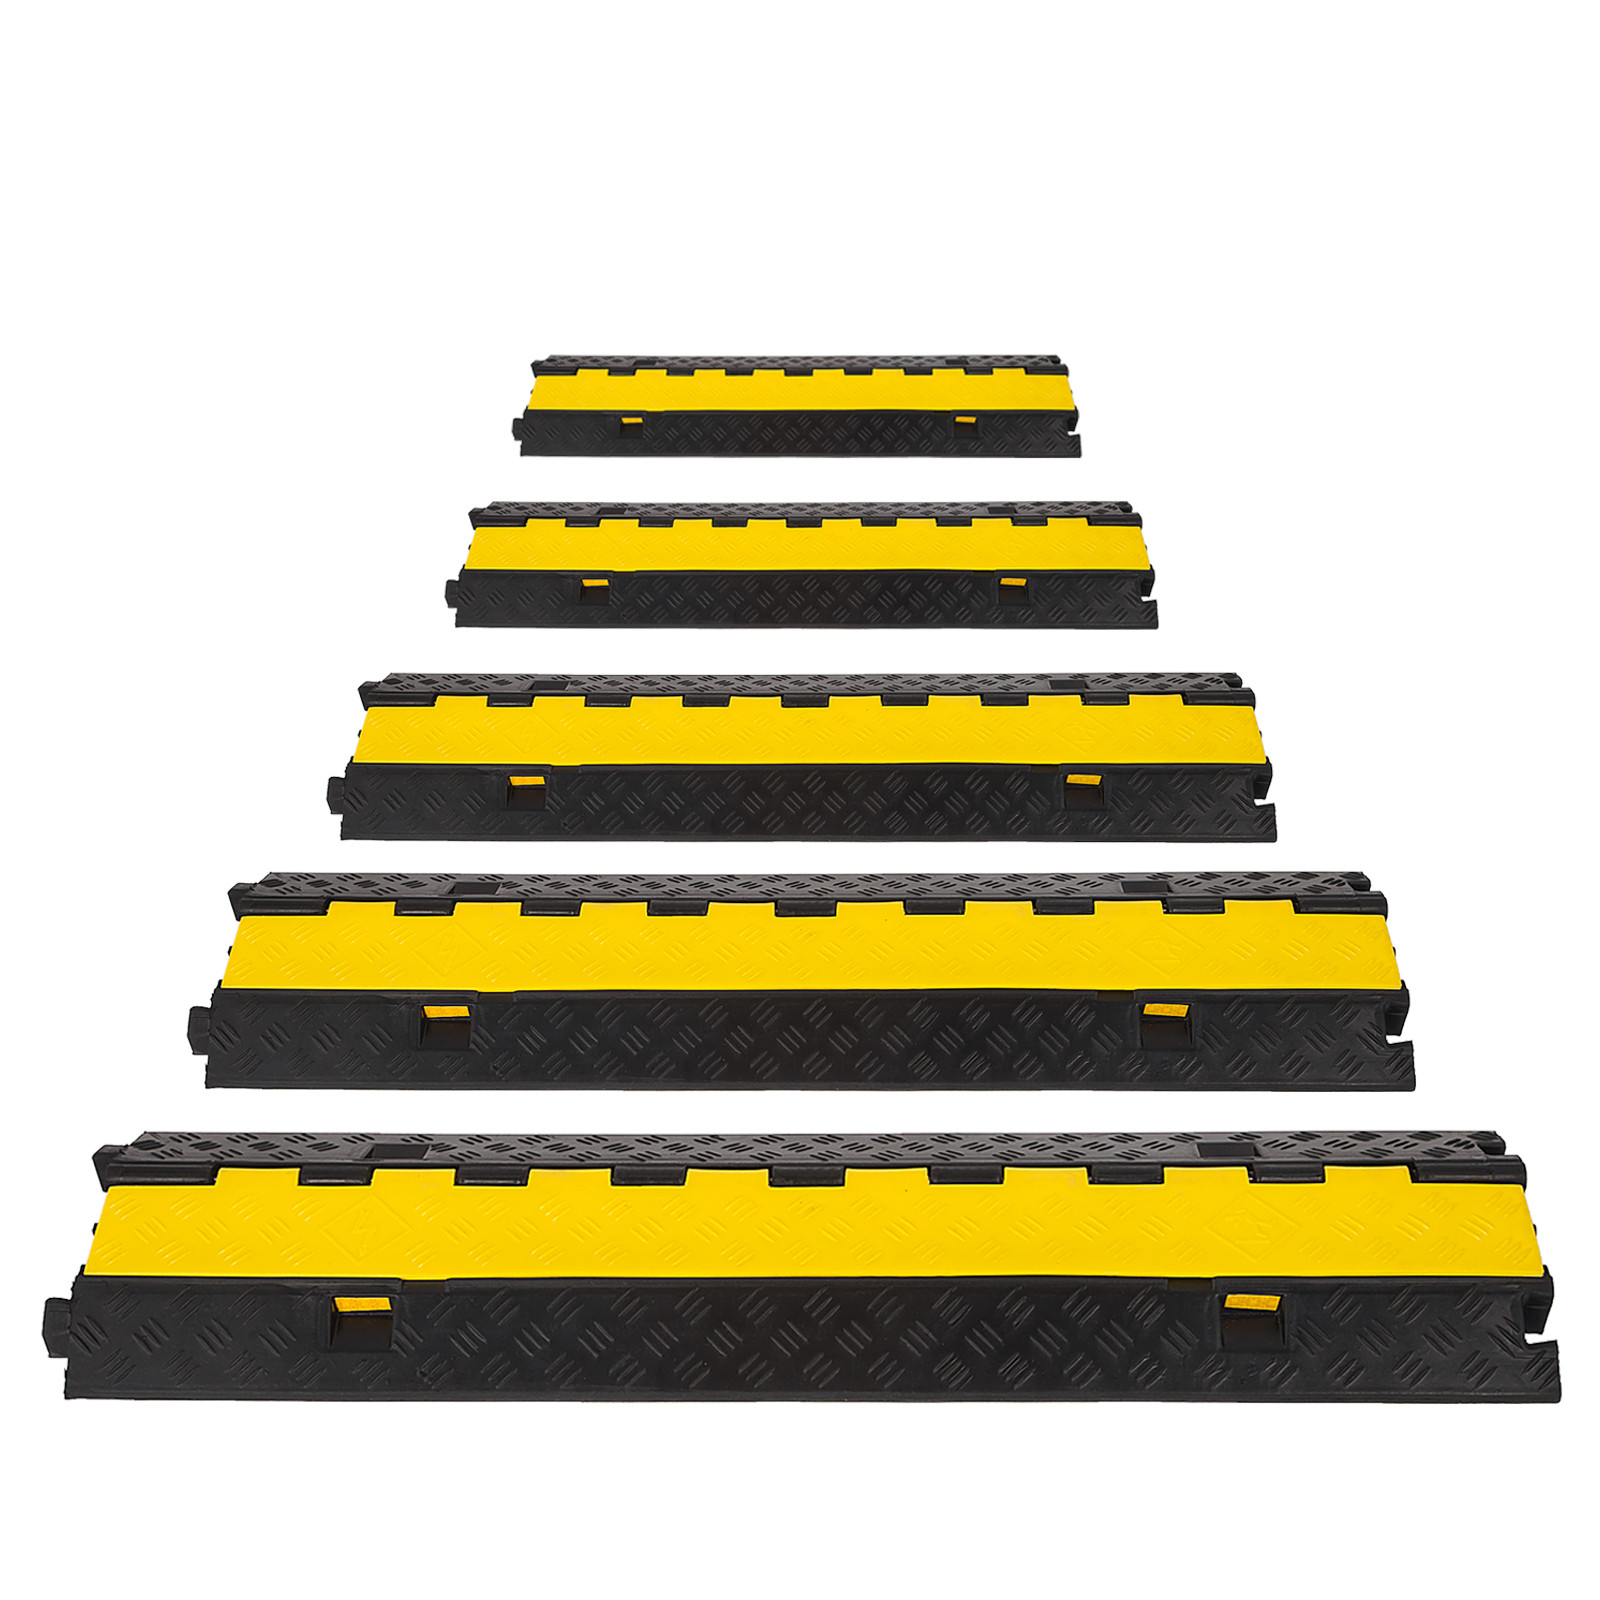 Rubber Cable Protector Ramp 2//3 Channel 45° Right//Left Turn Vehicle Yellow Lid